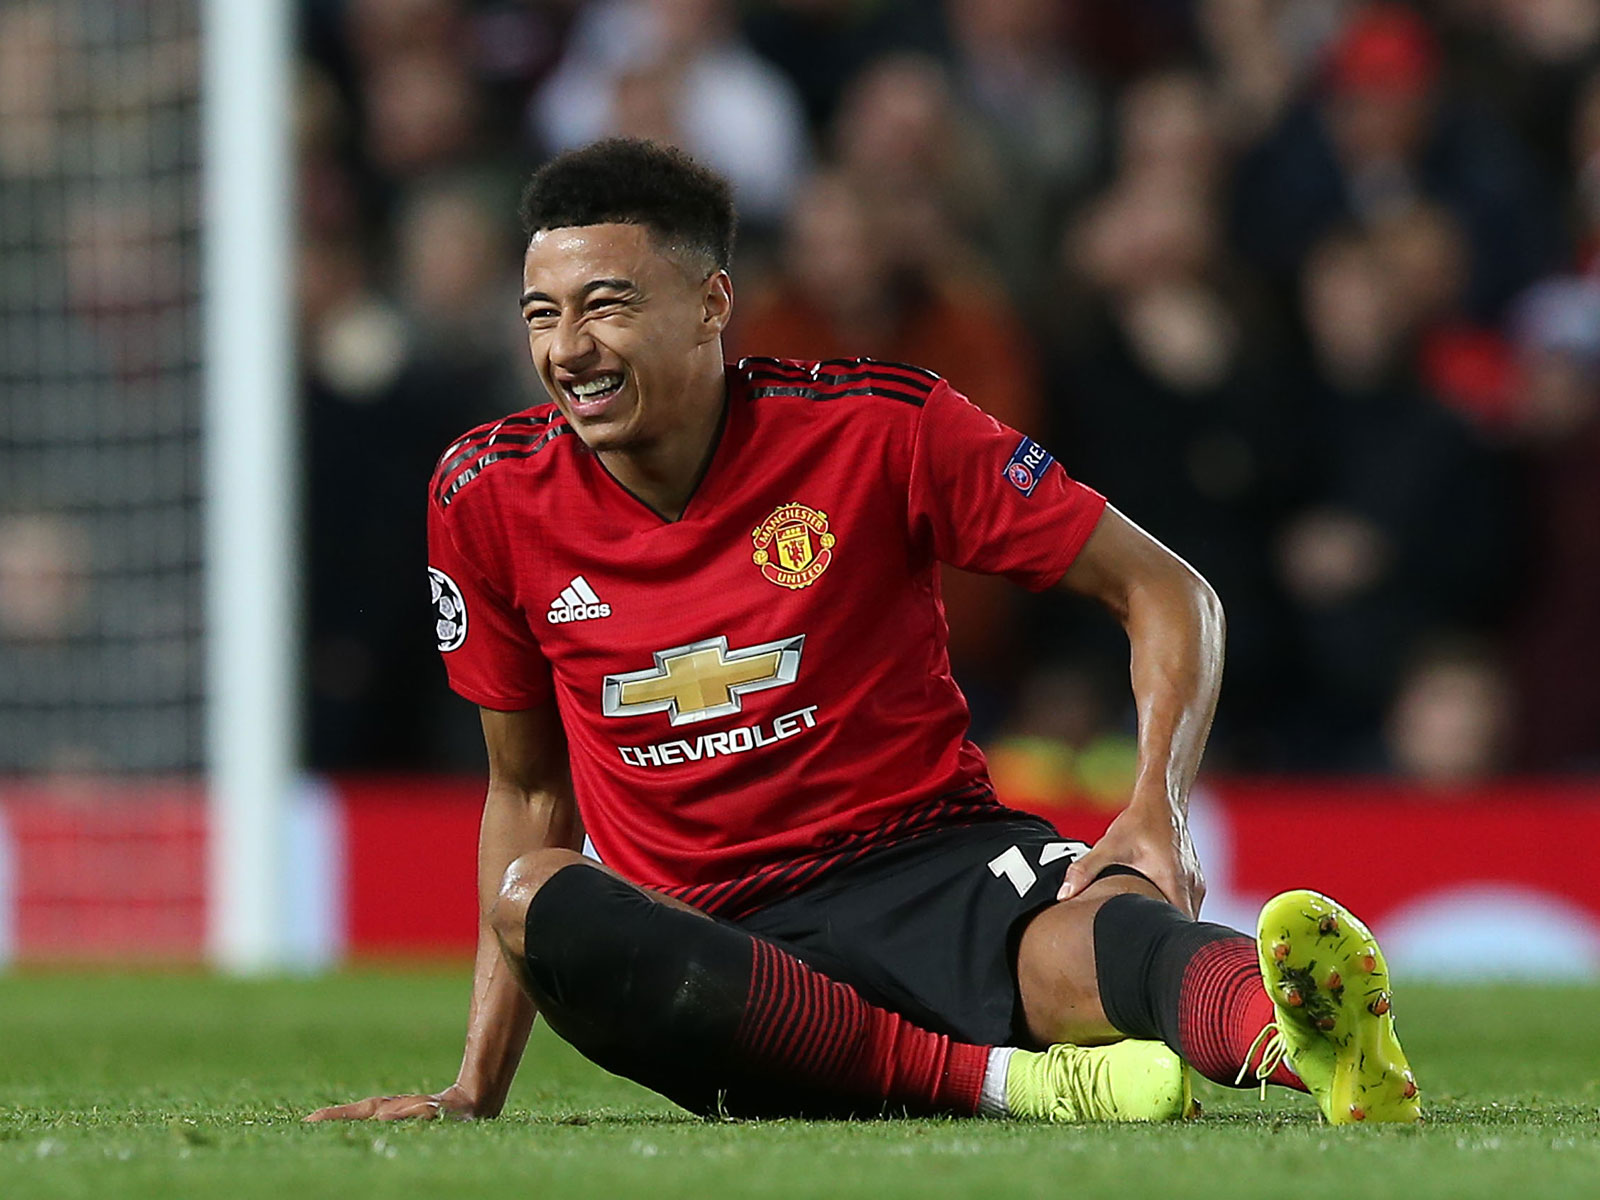 Jesse Lingard was injured for Manchester United vs. PSG